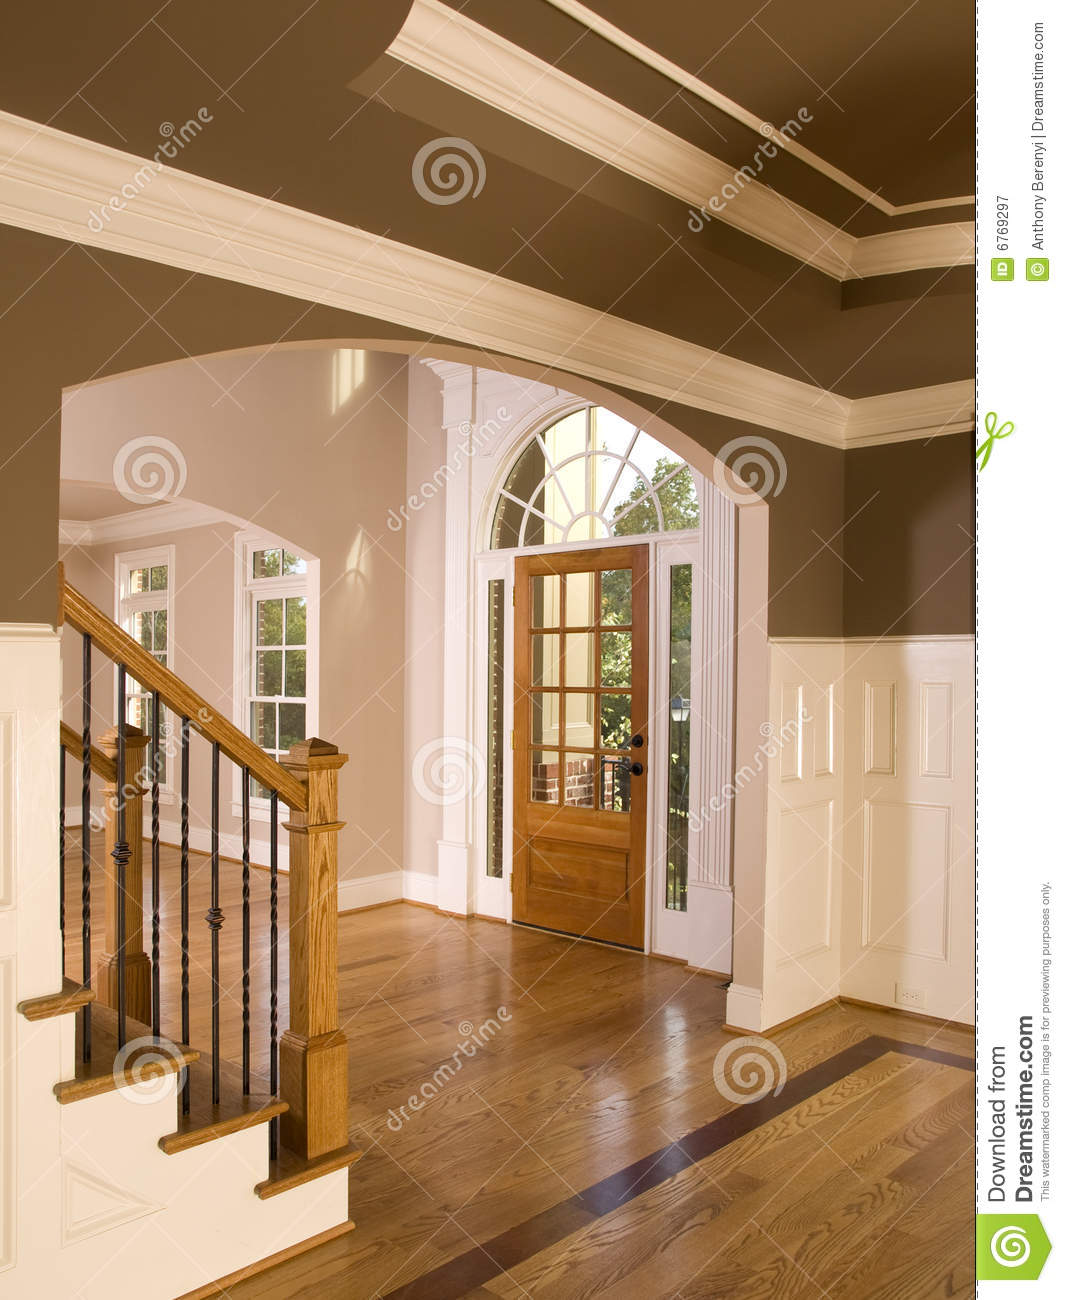 Luxury home entranceway with arch window royalty free for Luxury home windows